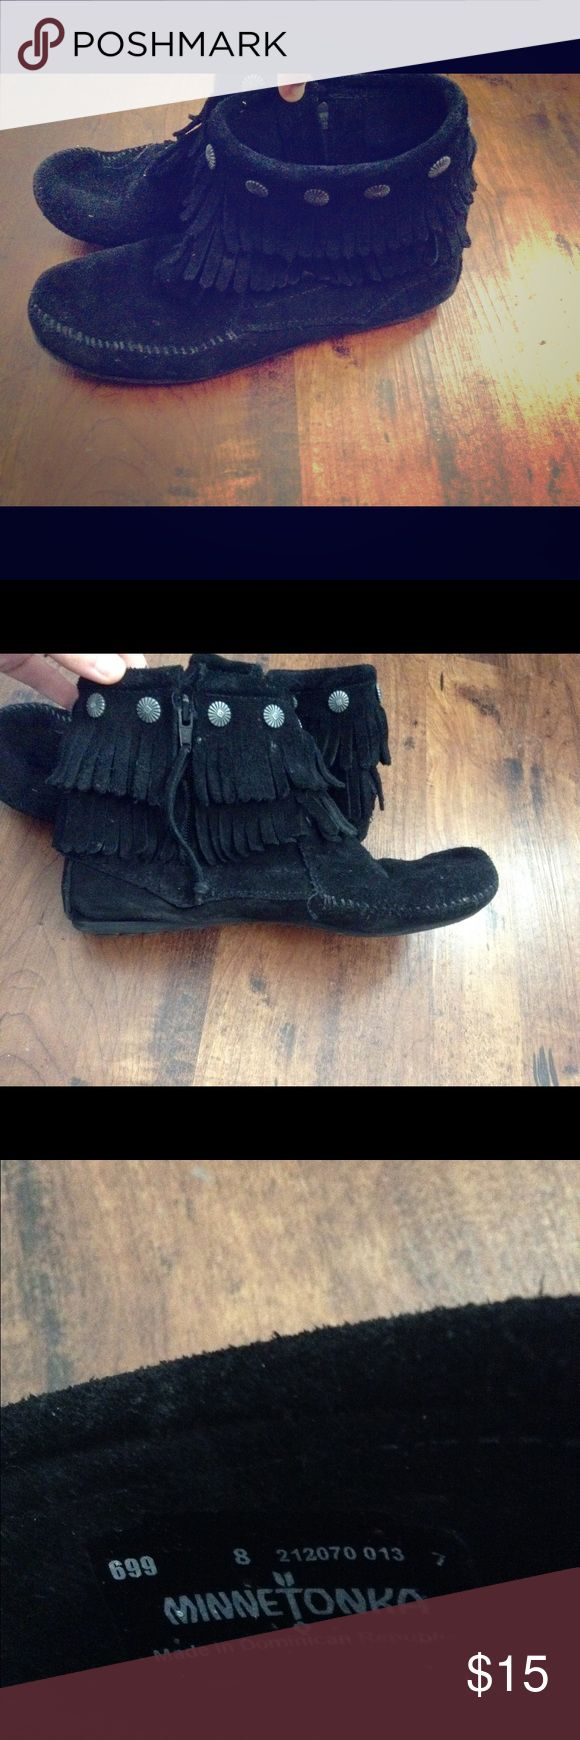 Black moccasin ankle booties Black moccasin ankle boots Minnetonka Shoes Ankle Boots & Booties